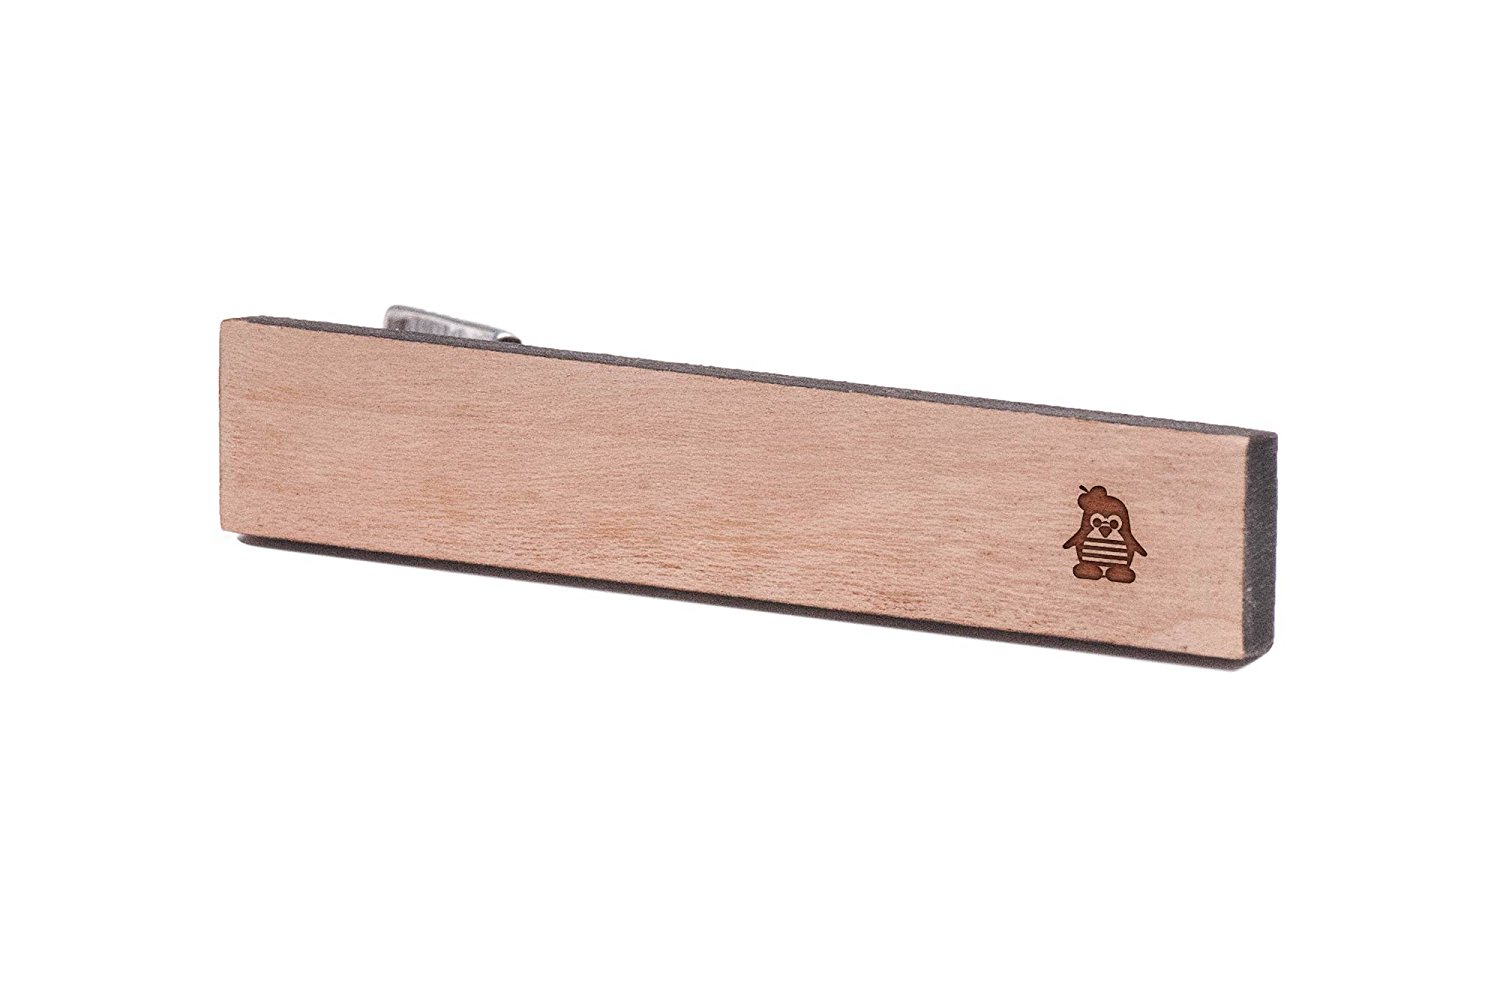 Wooden Accessories Company Wooden Tie Clips with Laser Engraved Sidebraid Design Cherry Wood Tie Bar Engraved in The USA